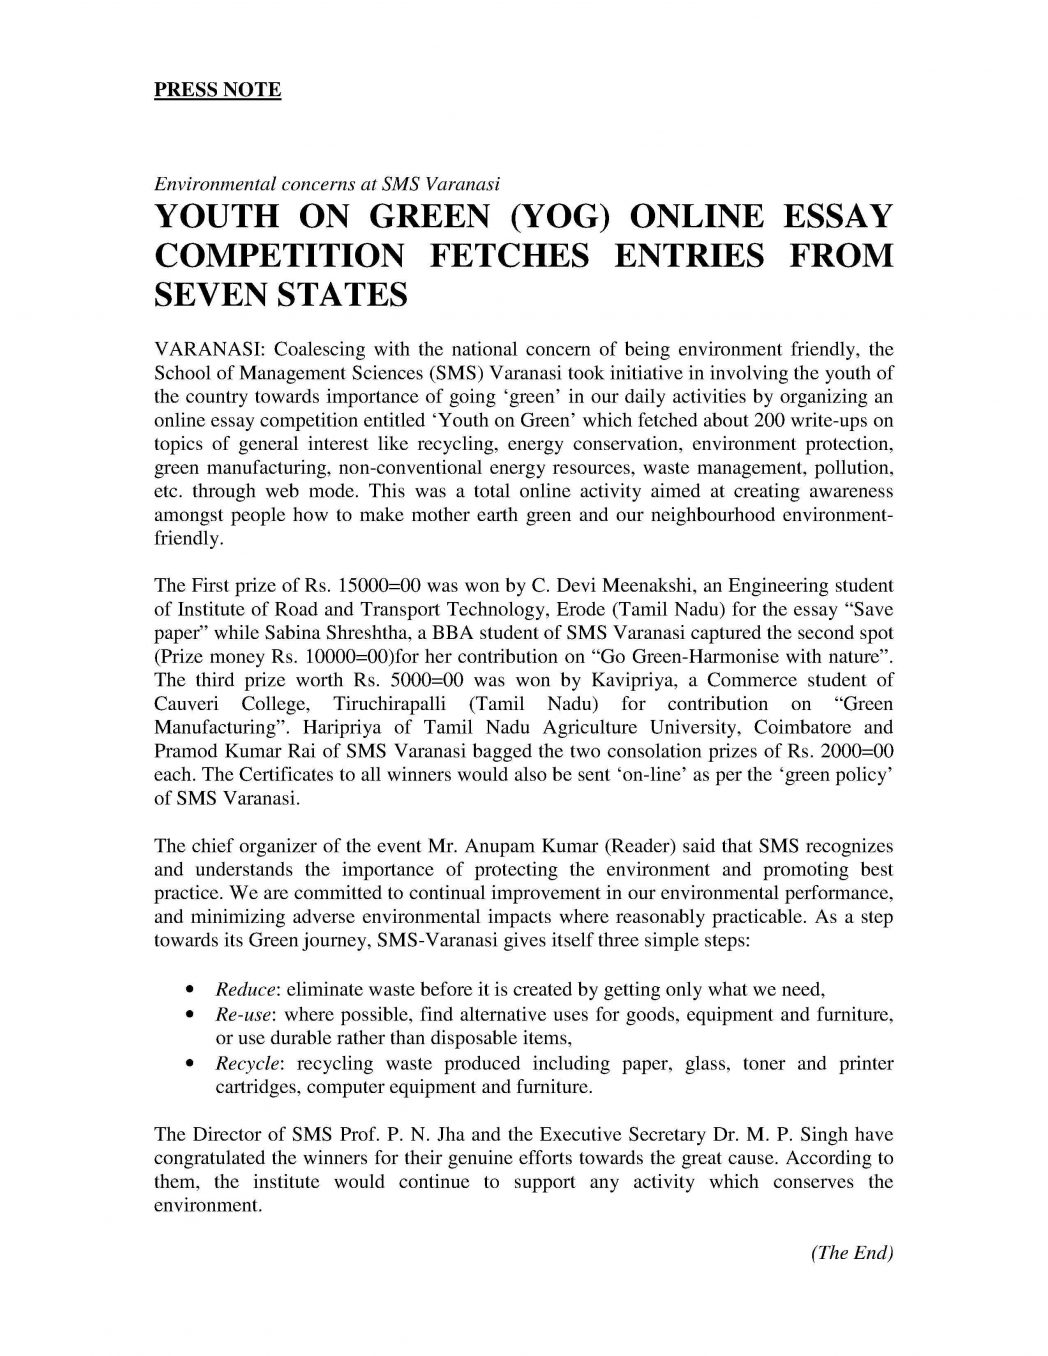 020 Best Essays For College Essay On Good Habits How Tot Application Online Yog Press Re About Yourself Examples Your Background Failure Prompt Off Hook 1048x1356 Example Amazing To Start An Write A Paper Climate Change Expository With Quote Format Full